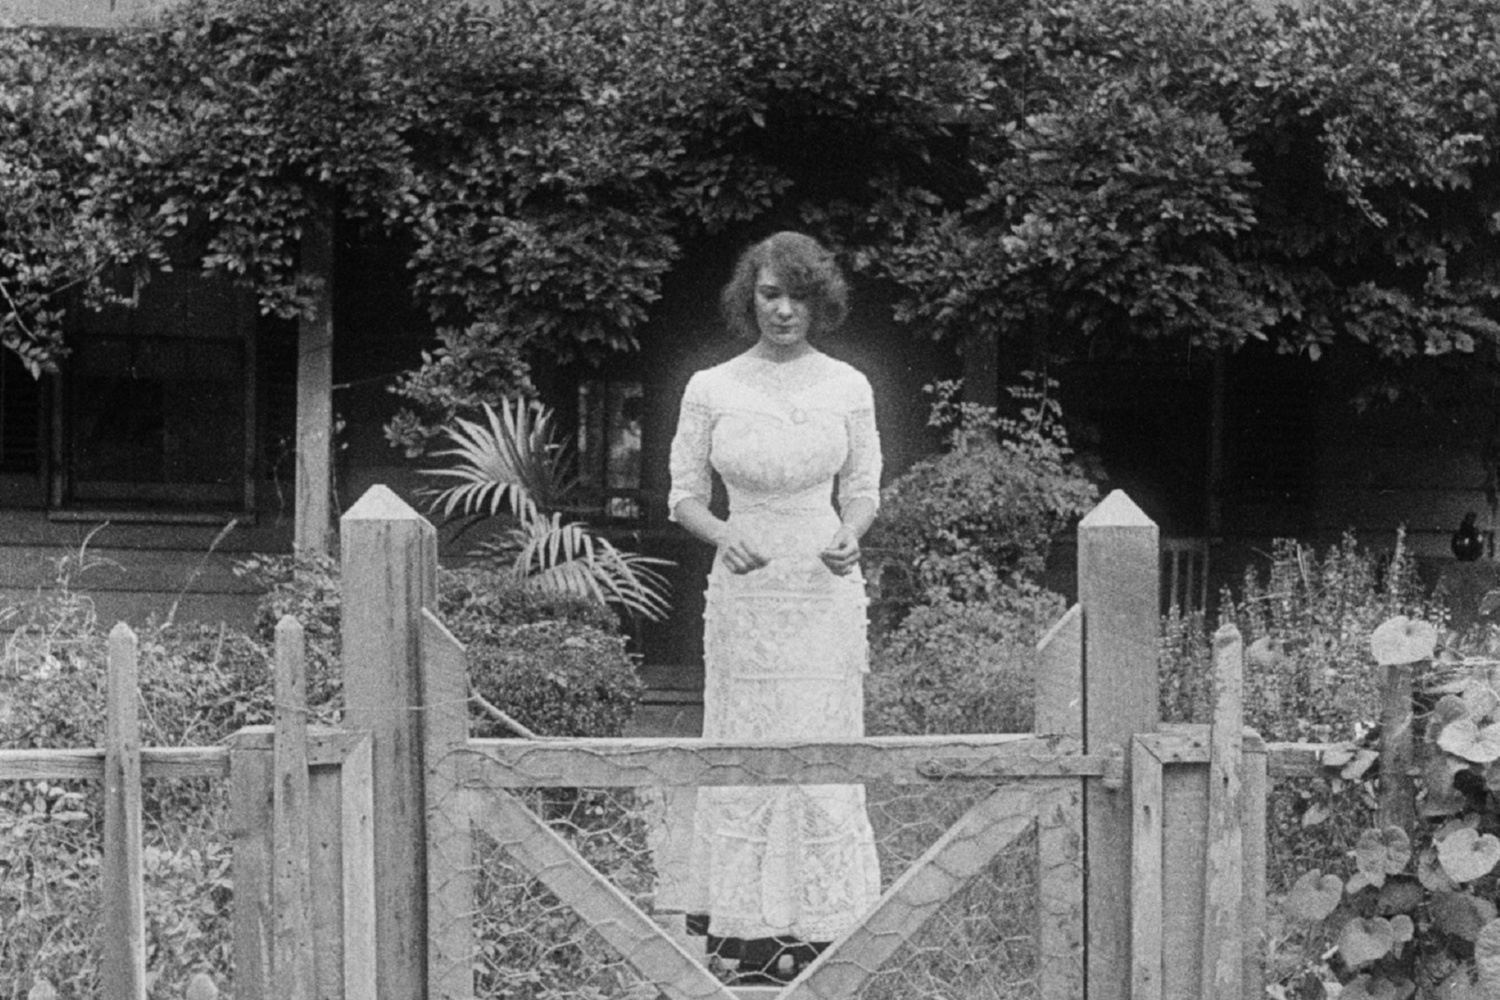 Lime Kiln Club Field Day. 1913/2014. Directed by T. Hayes Hunter, Edwin Middleton. Courtesy The Museum of Modern Art Film Stills Archive